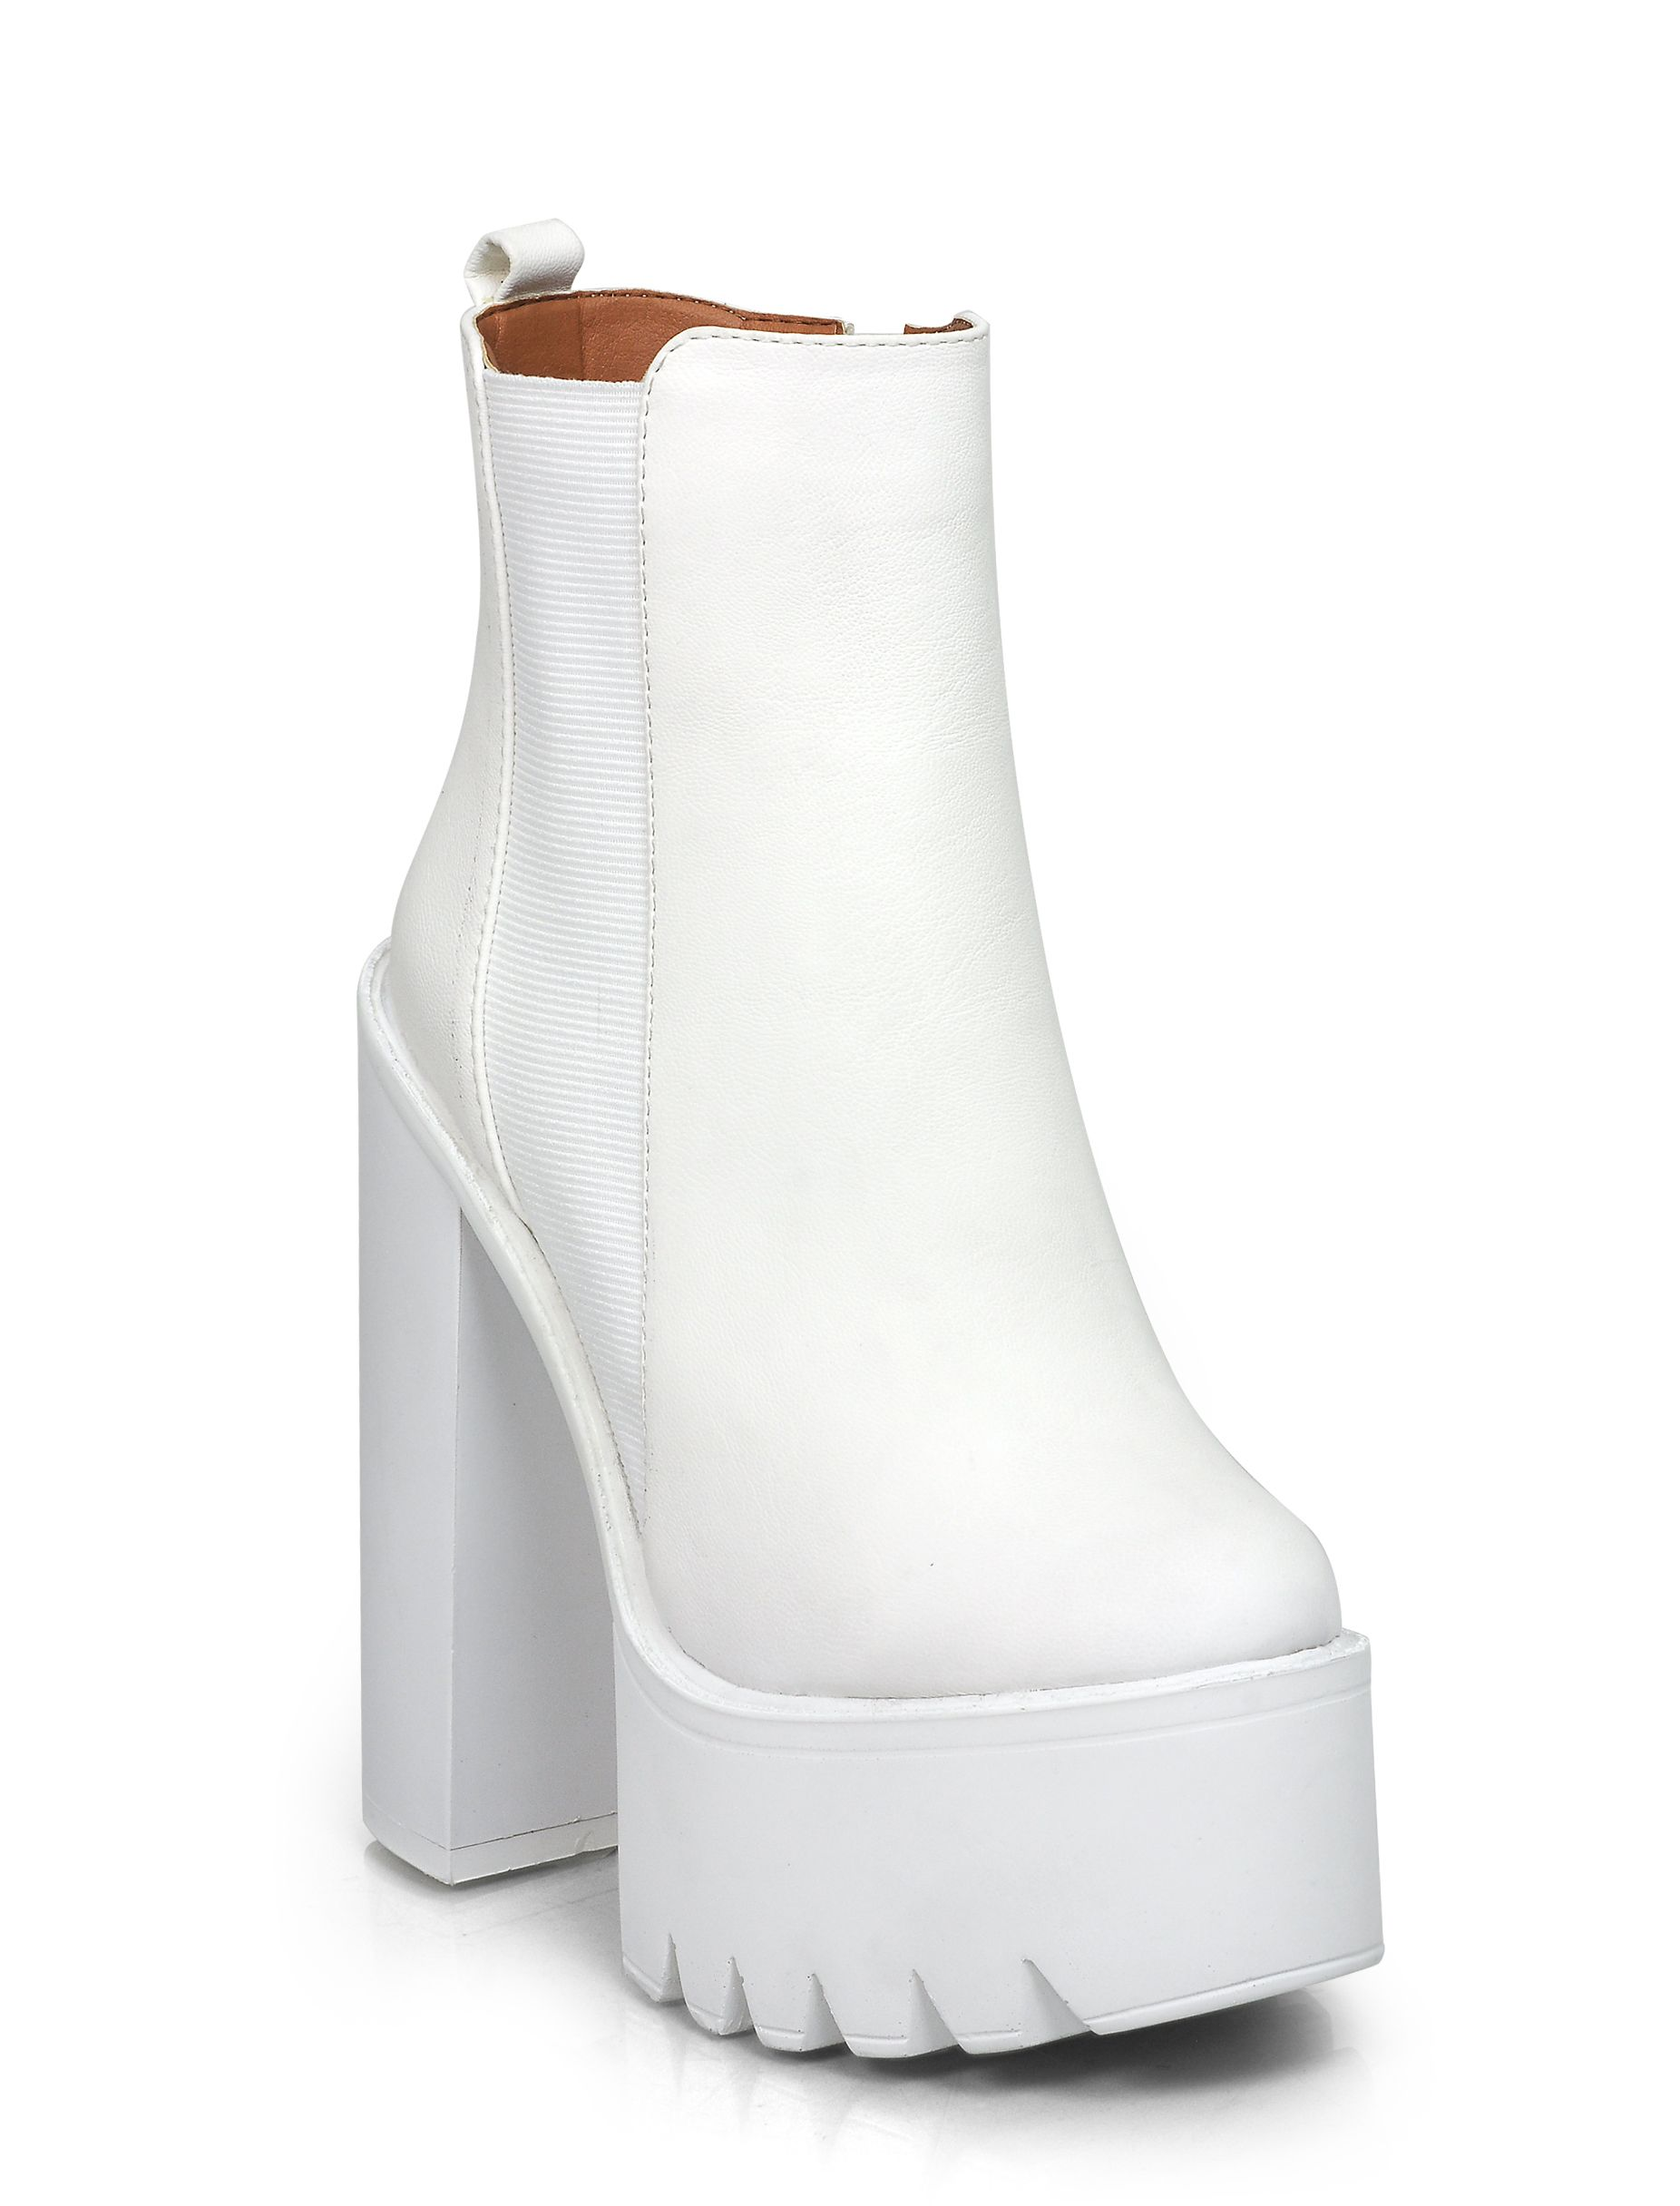 La Moda Saffron White Cleated Sole Boots  96711001194